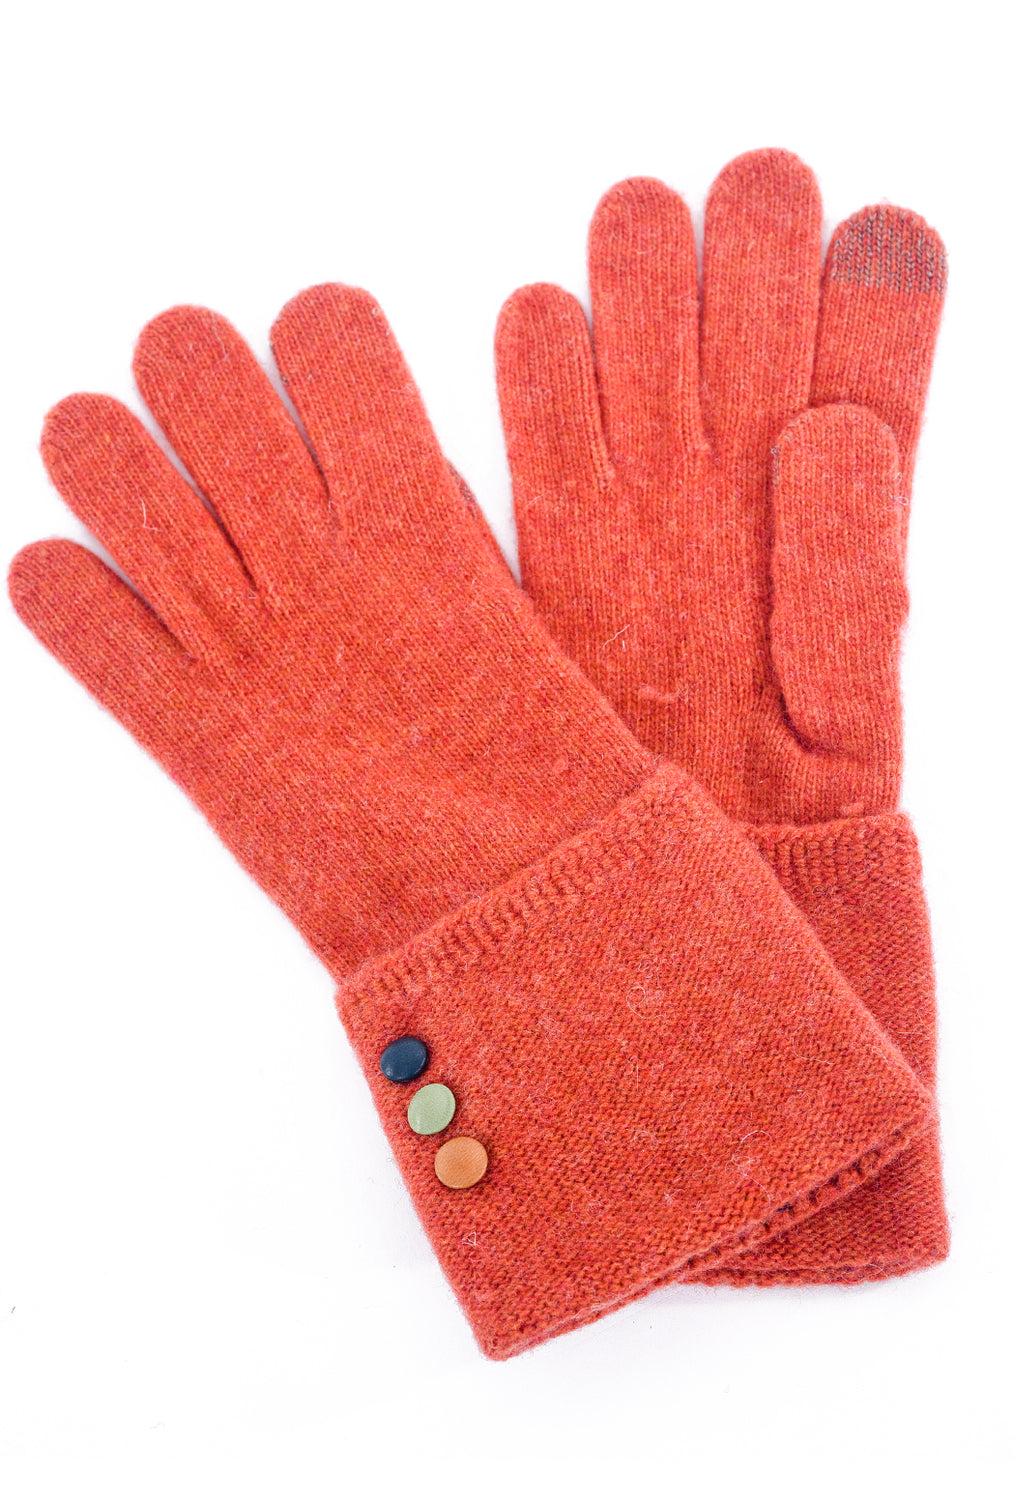 Santacana Madrid Button-Cuff Knit Gloves, Orange One Size Orange